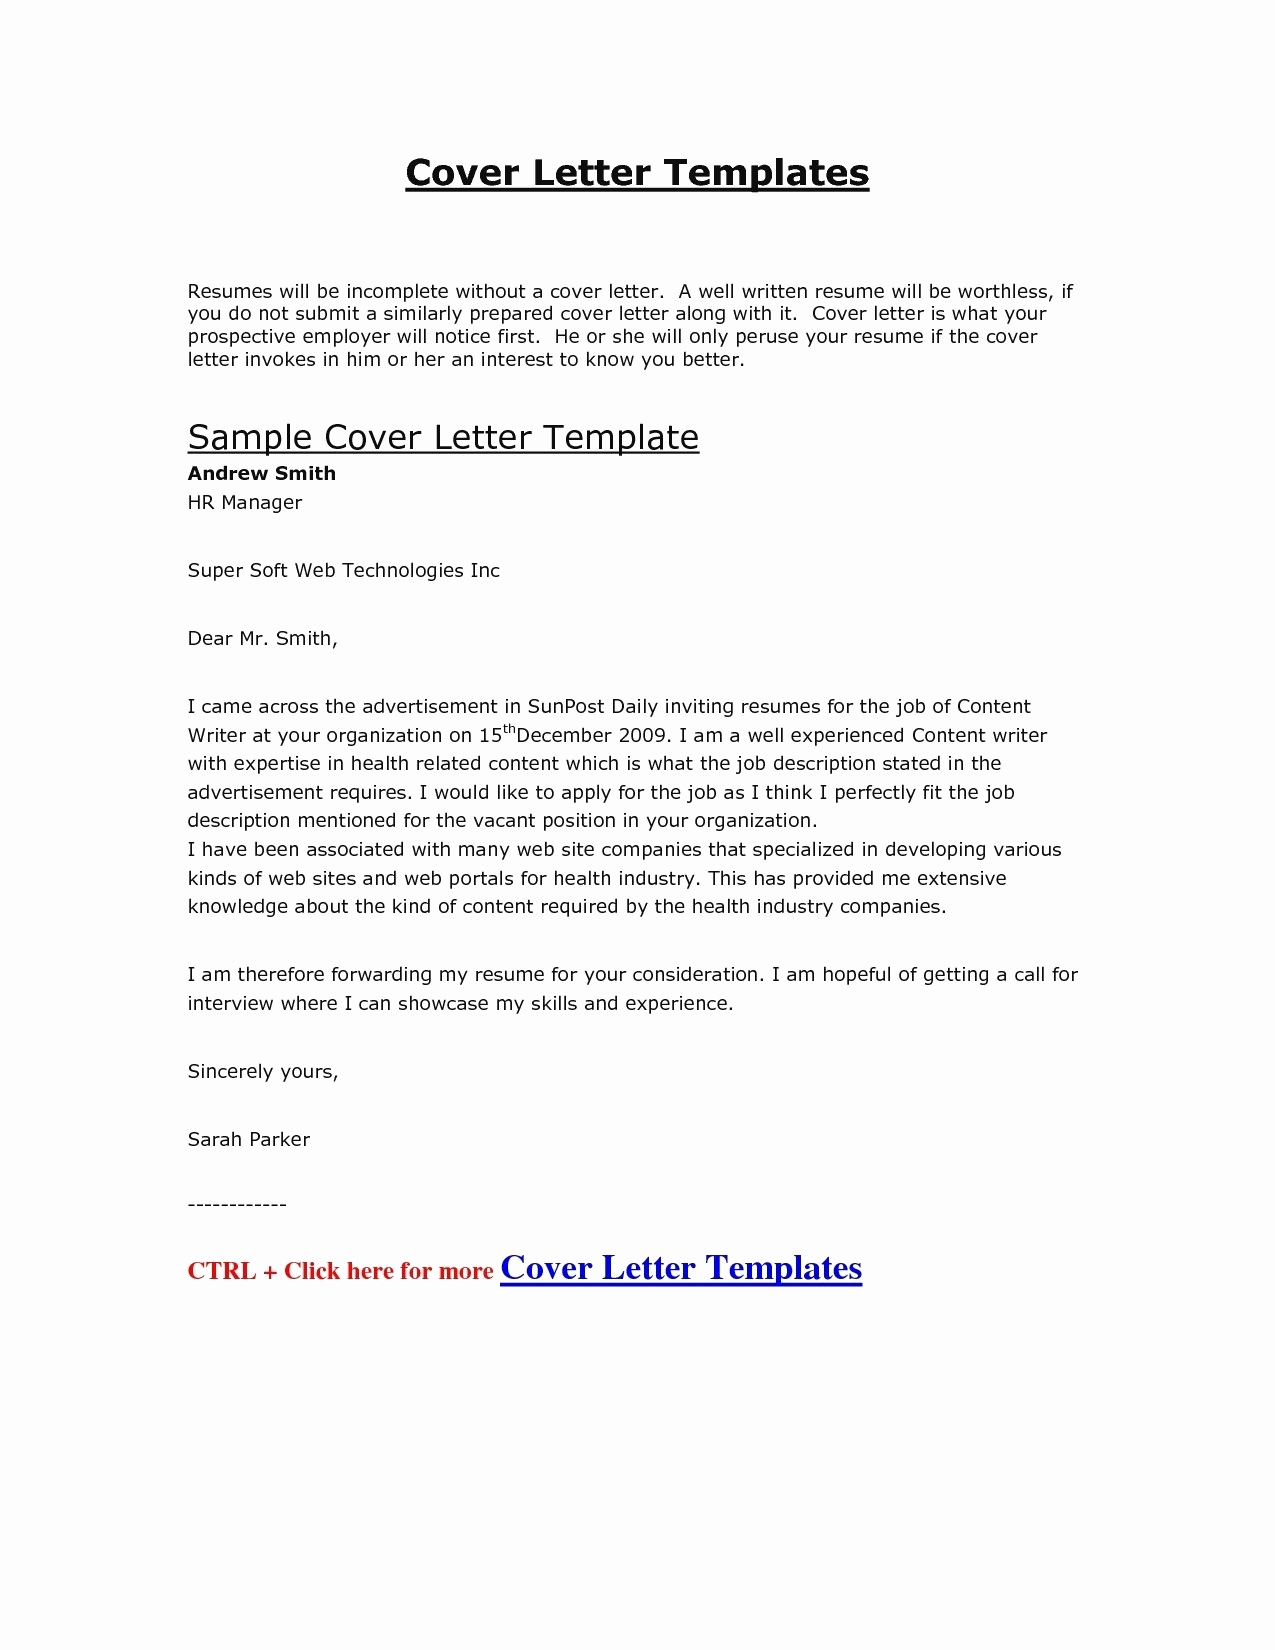 Hr Cover Letter Template - Good Cover Letter Examples Inspirational Job Application format